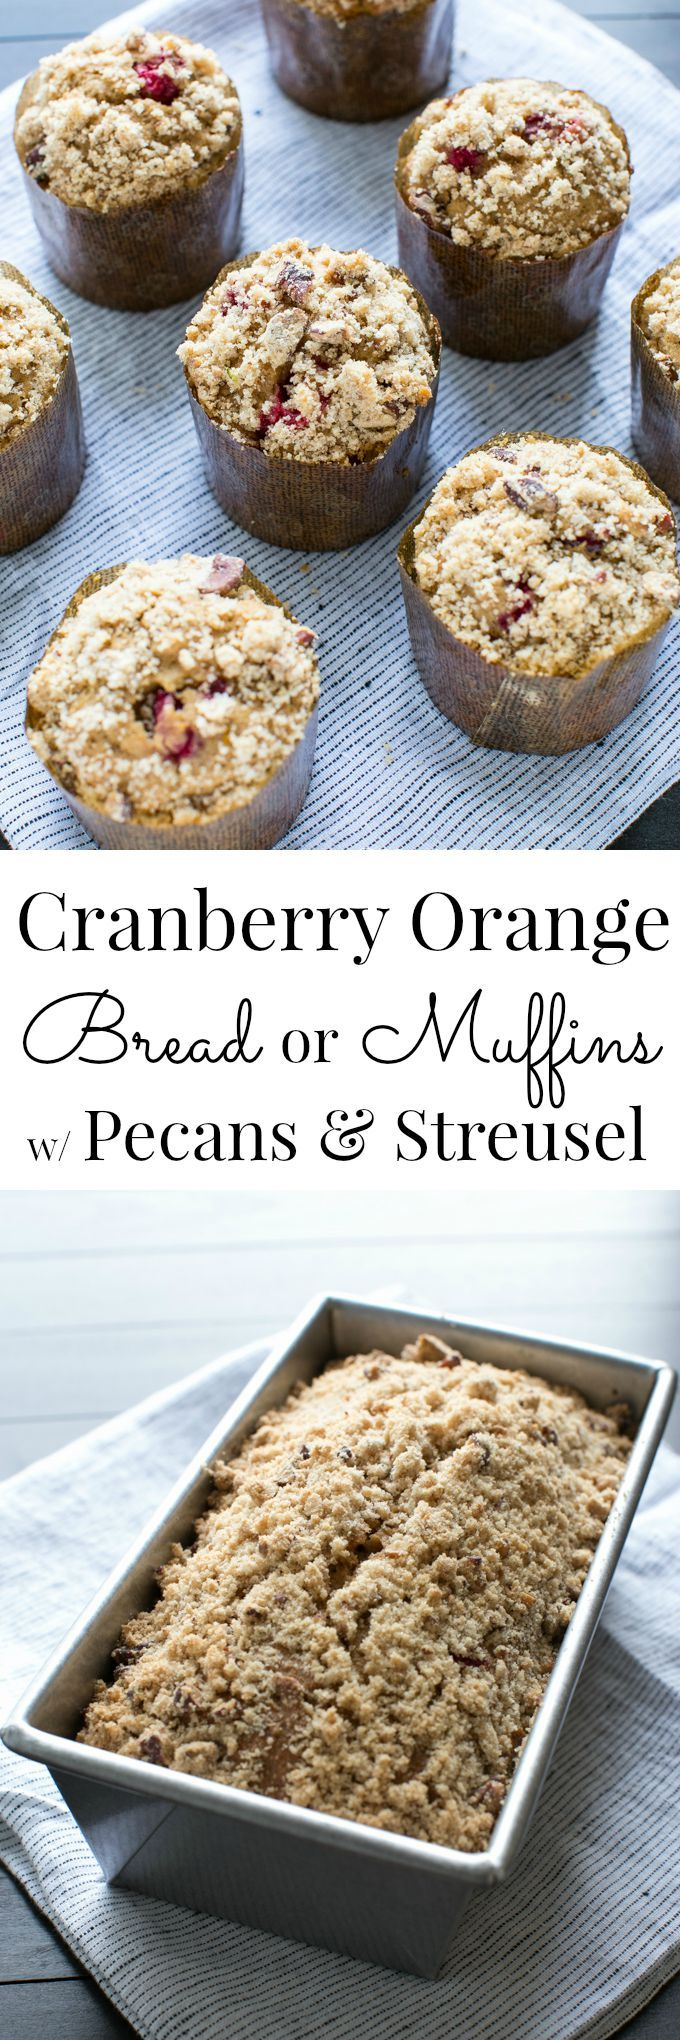 Cranberry Orange Bread with Pecans | Recipe | Beans, Cranberries and ...